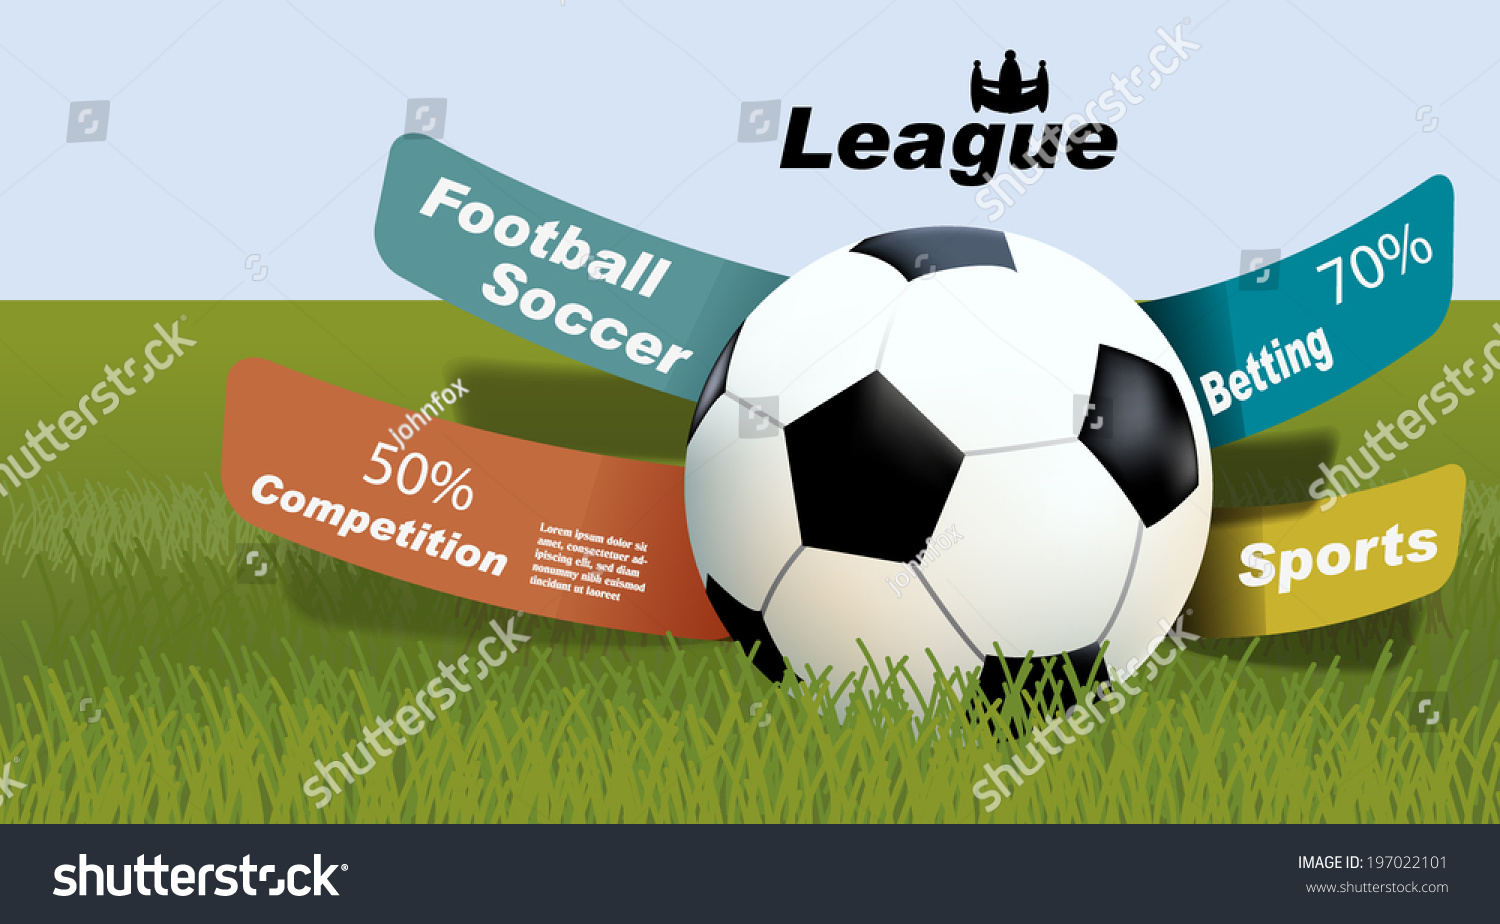 Sports Betting Statistics Football Betting Leagues Stock Vector (Royalty  Free) 197022101